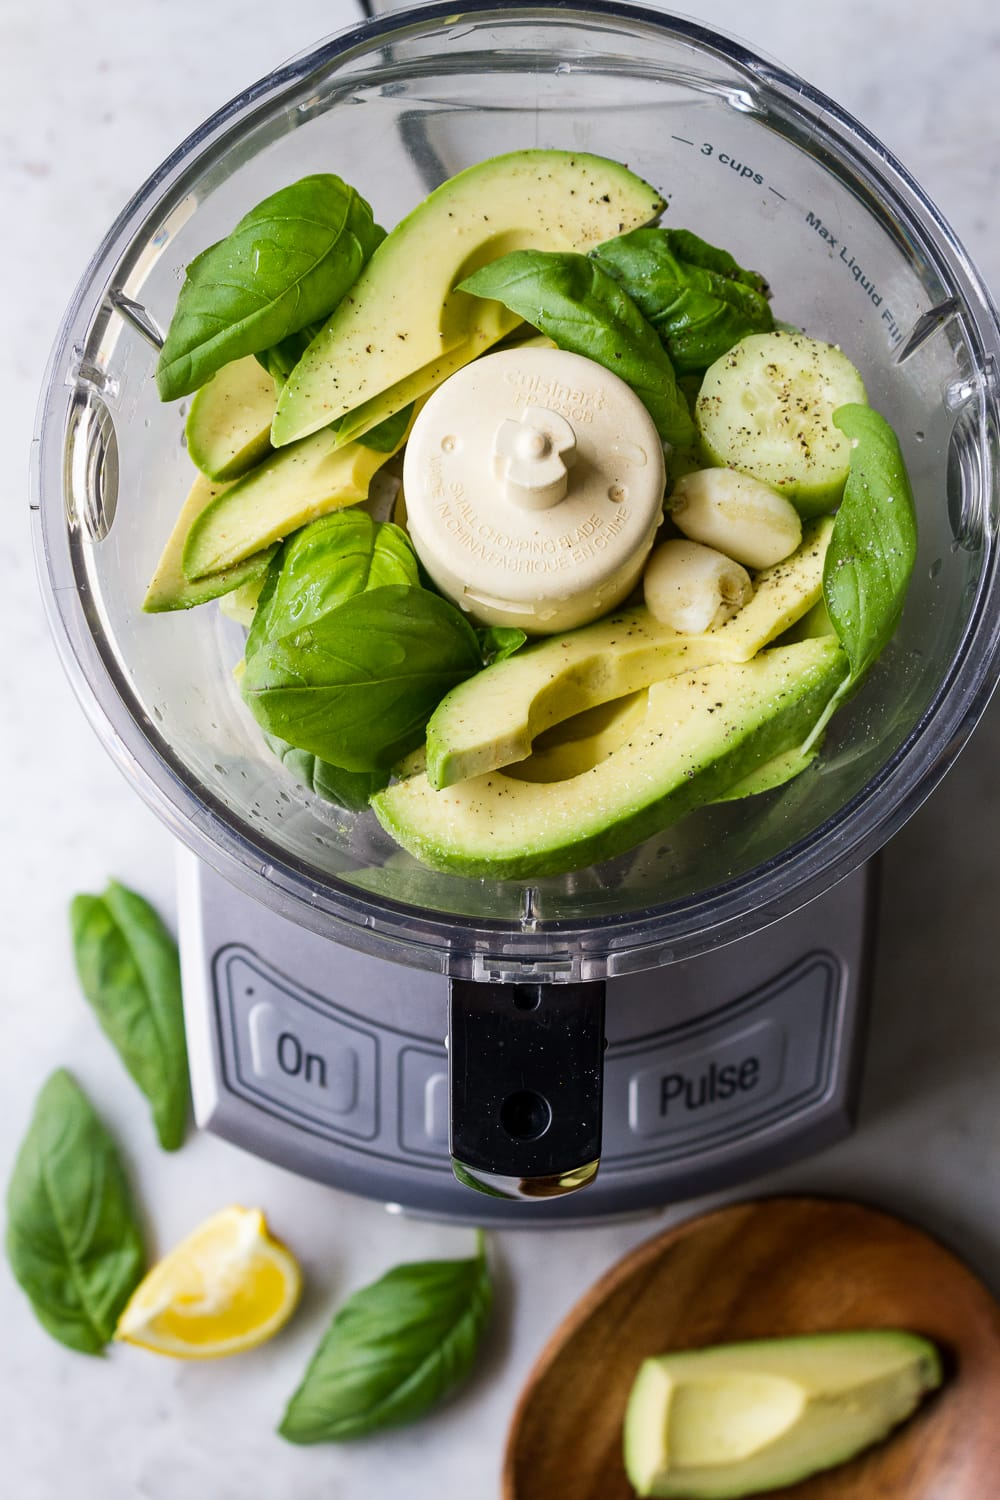 top down view of food processor with sliced avocado, cucumbers, basil leaves, salt, garlic, pepper and lemon juice before putting the lid on to process into a creamy sauce